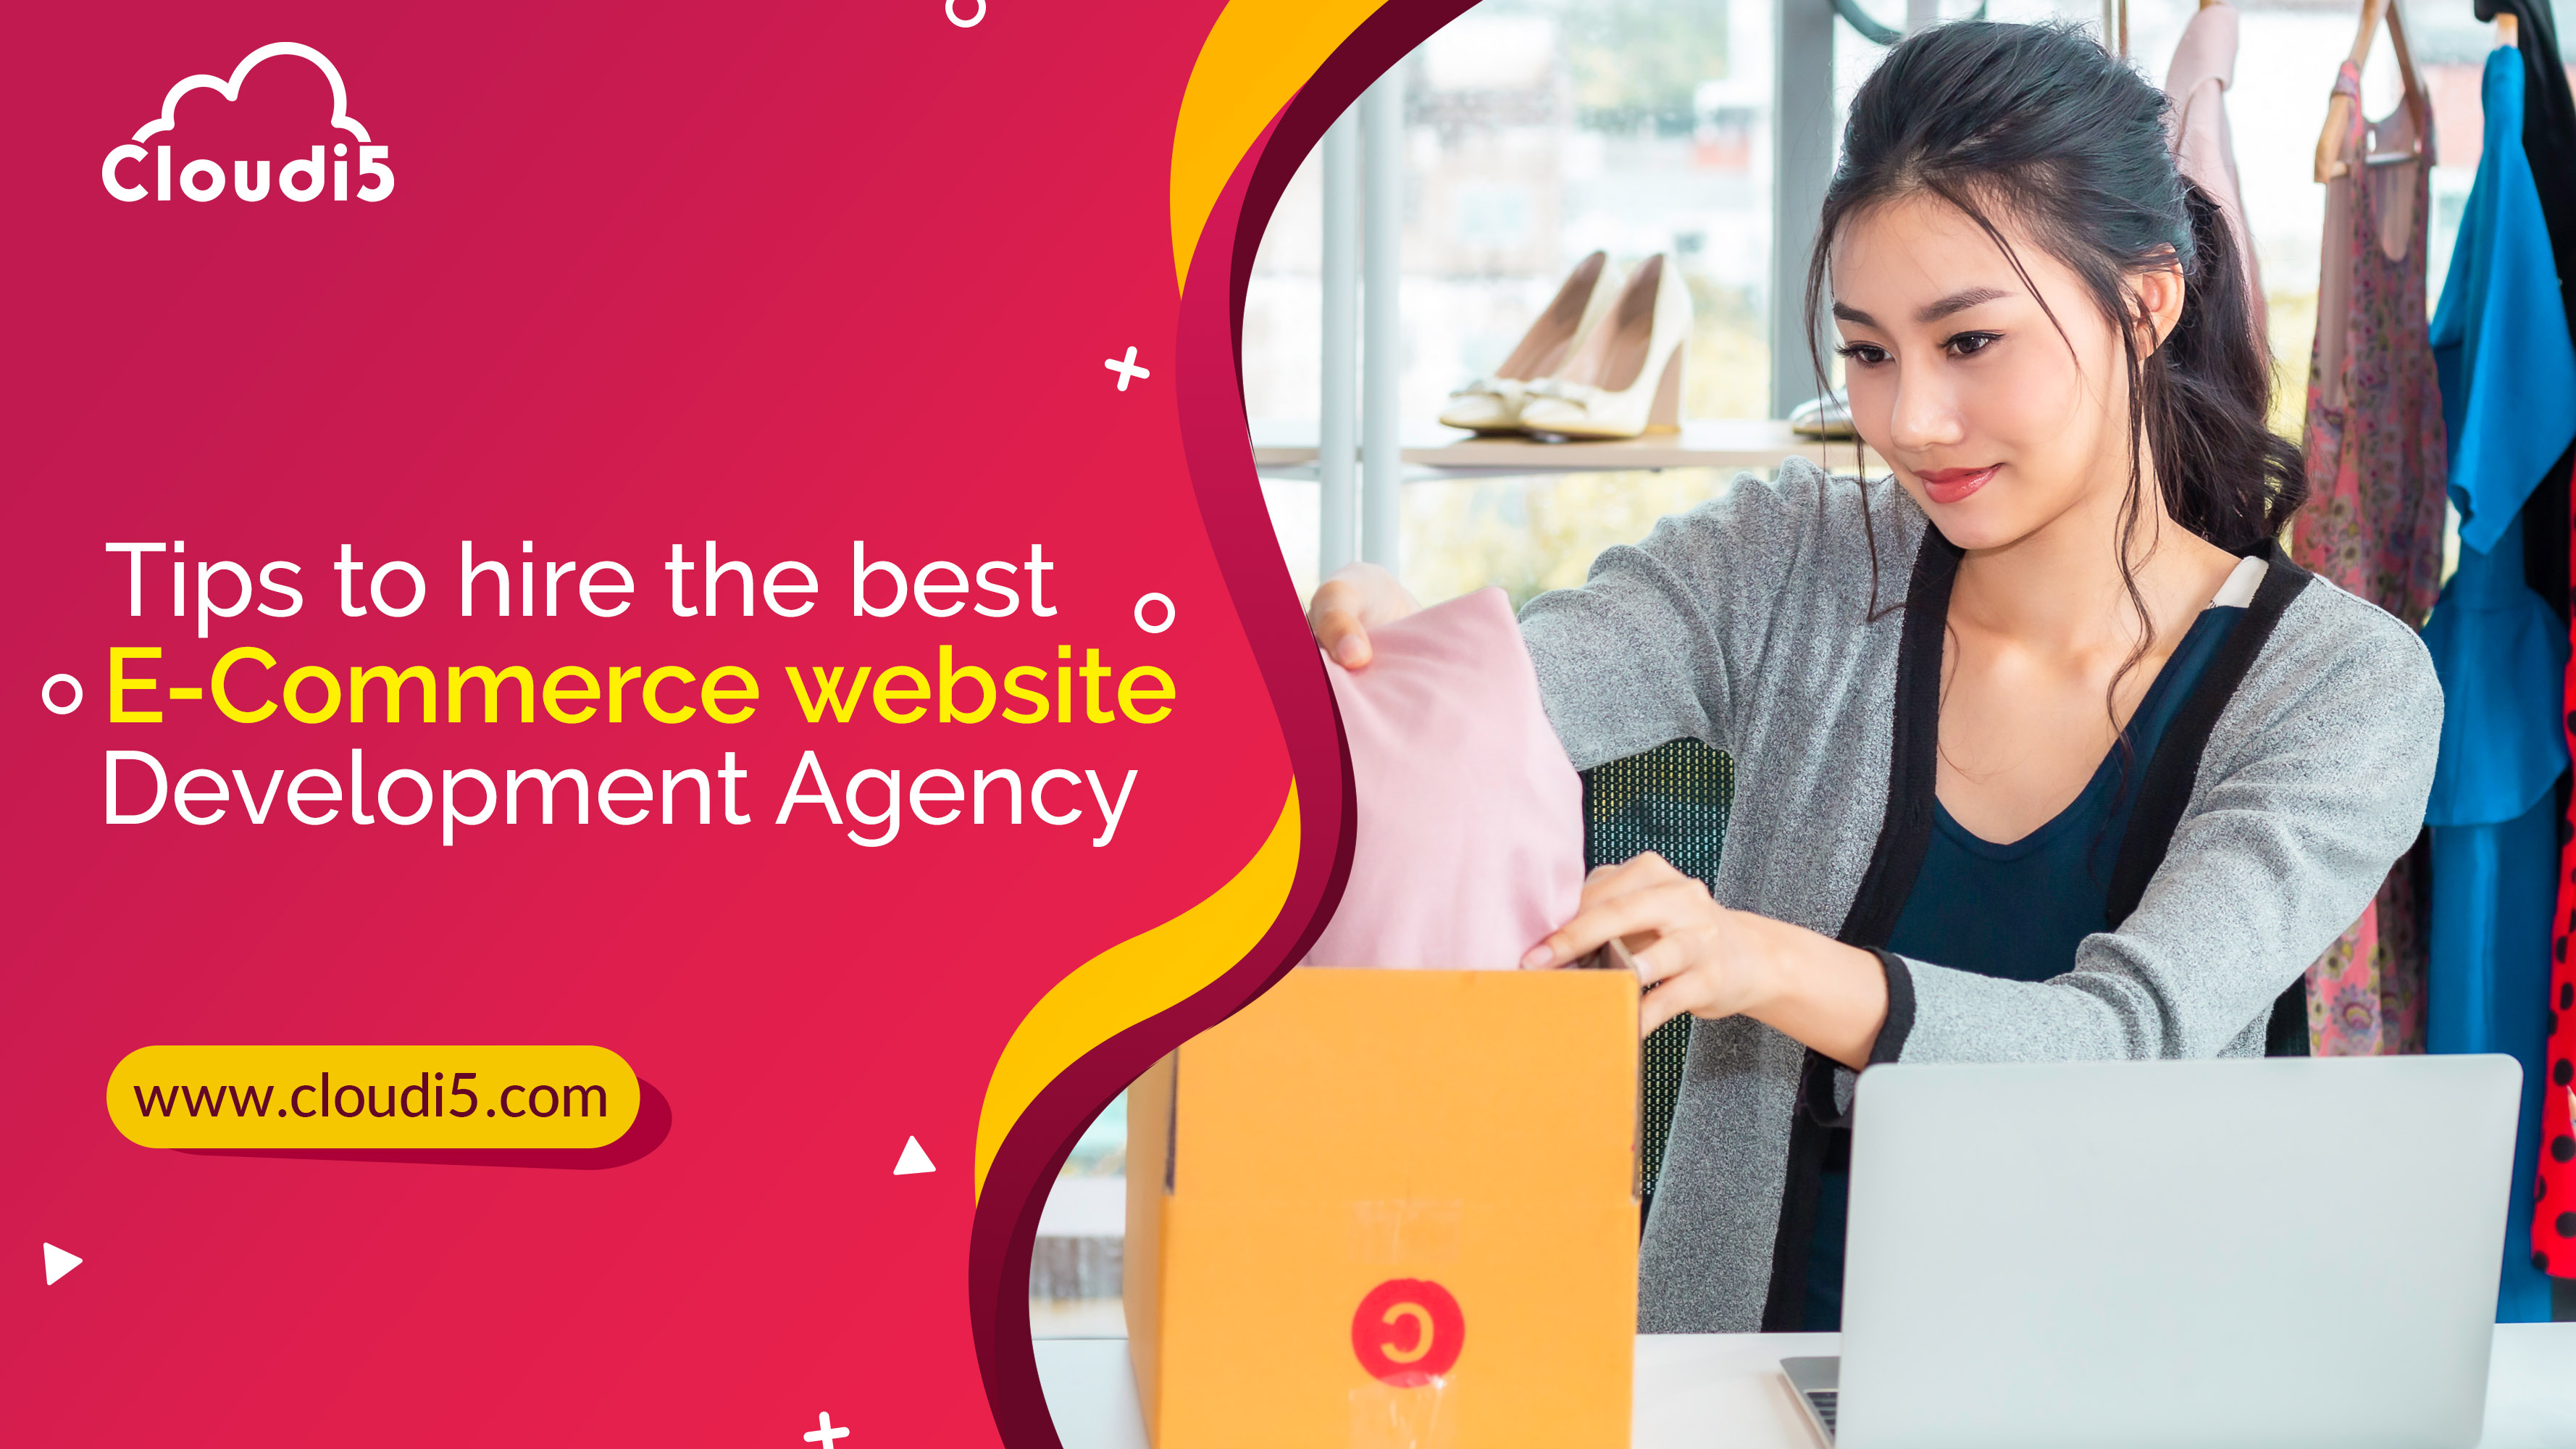 Tips to hire the best e-commerce website development agency